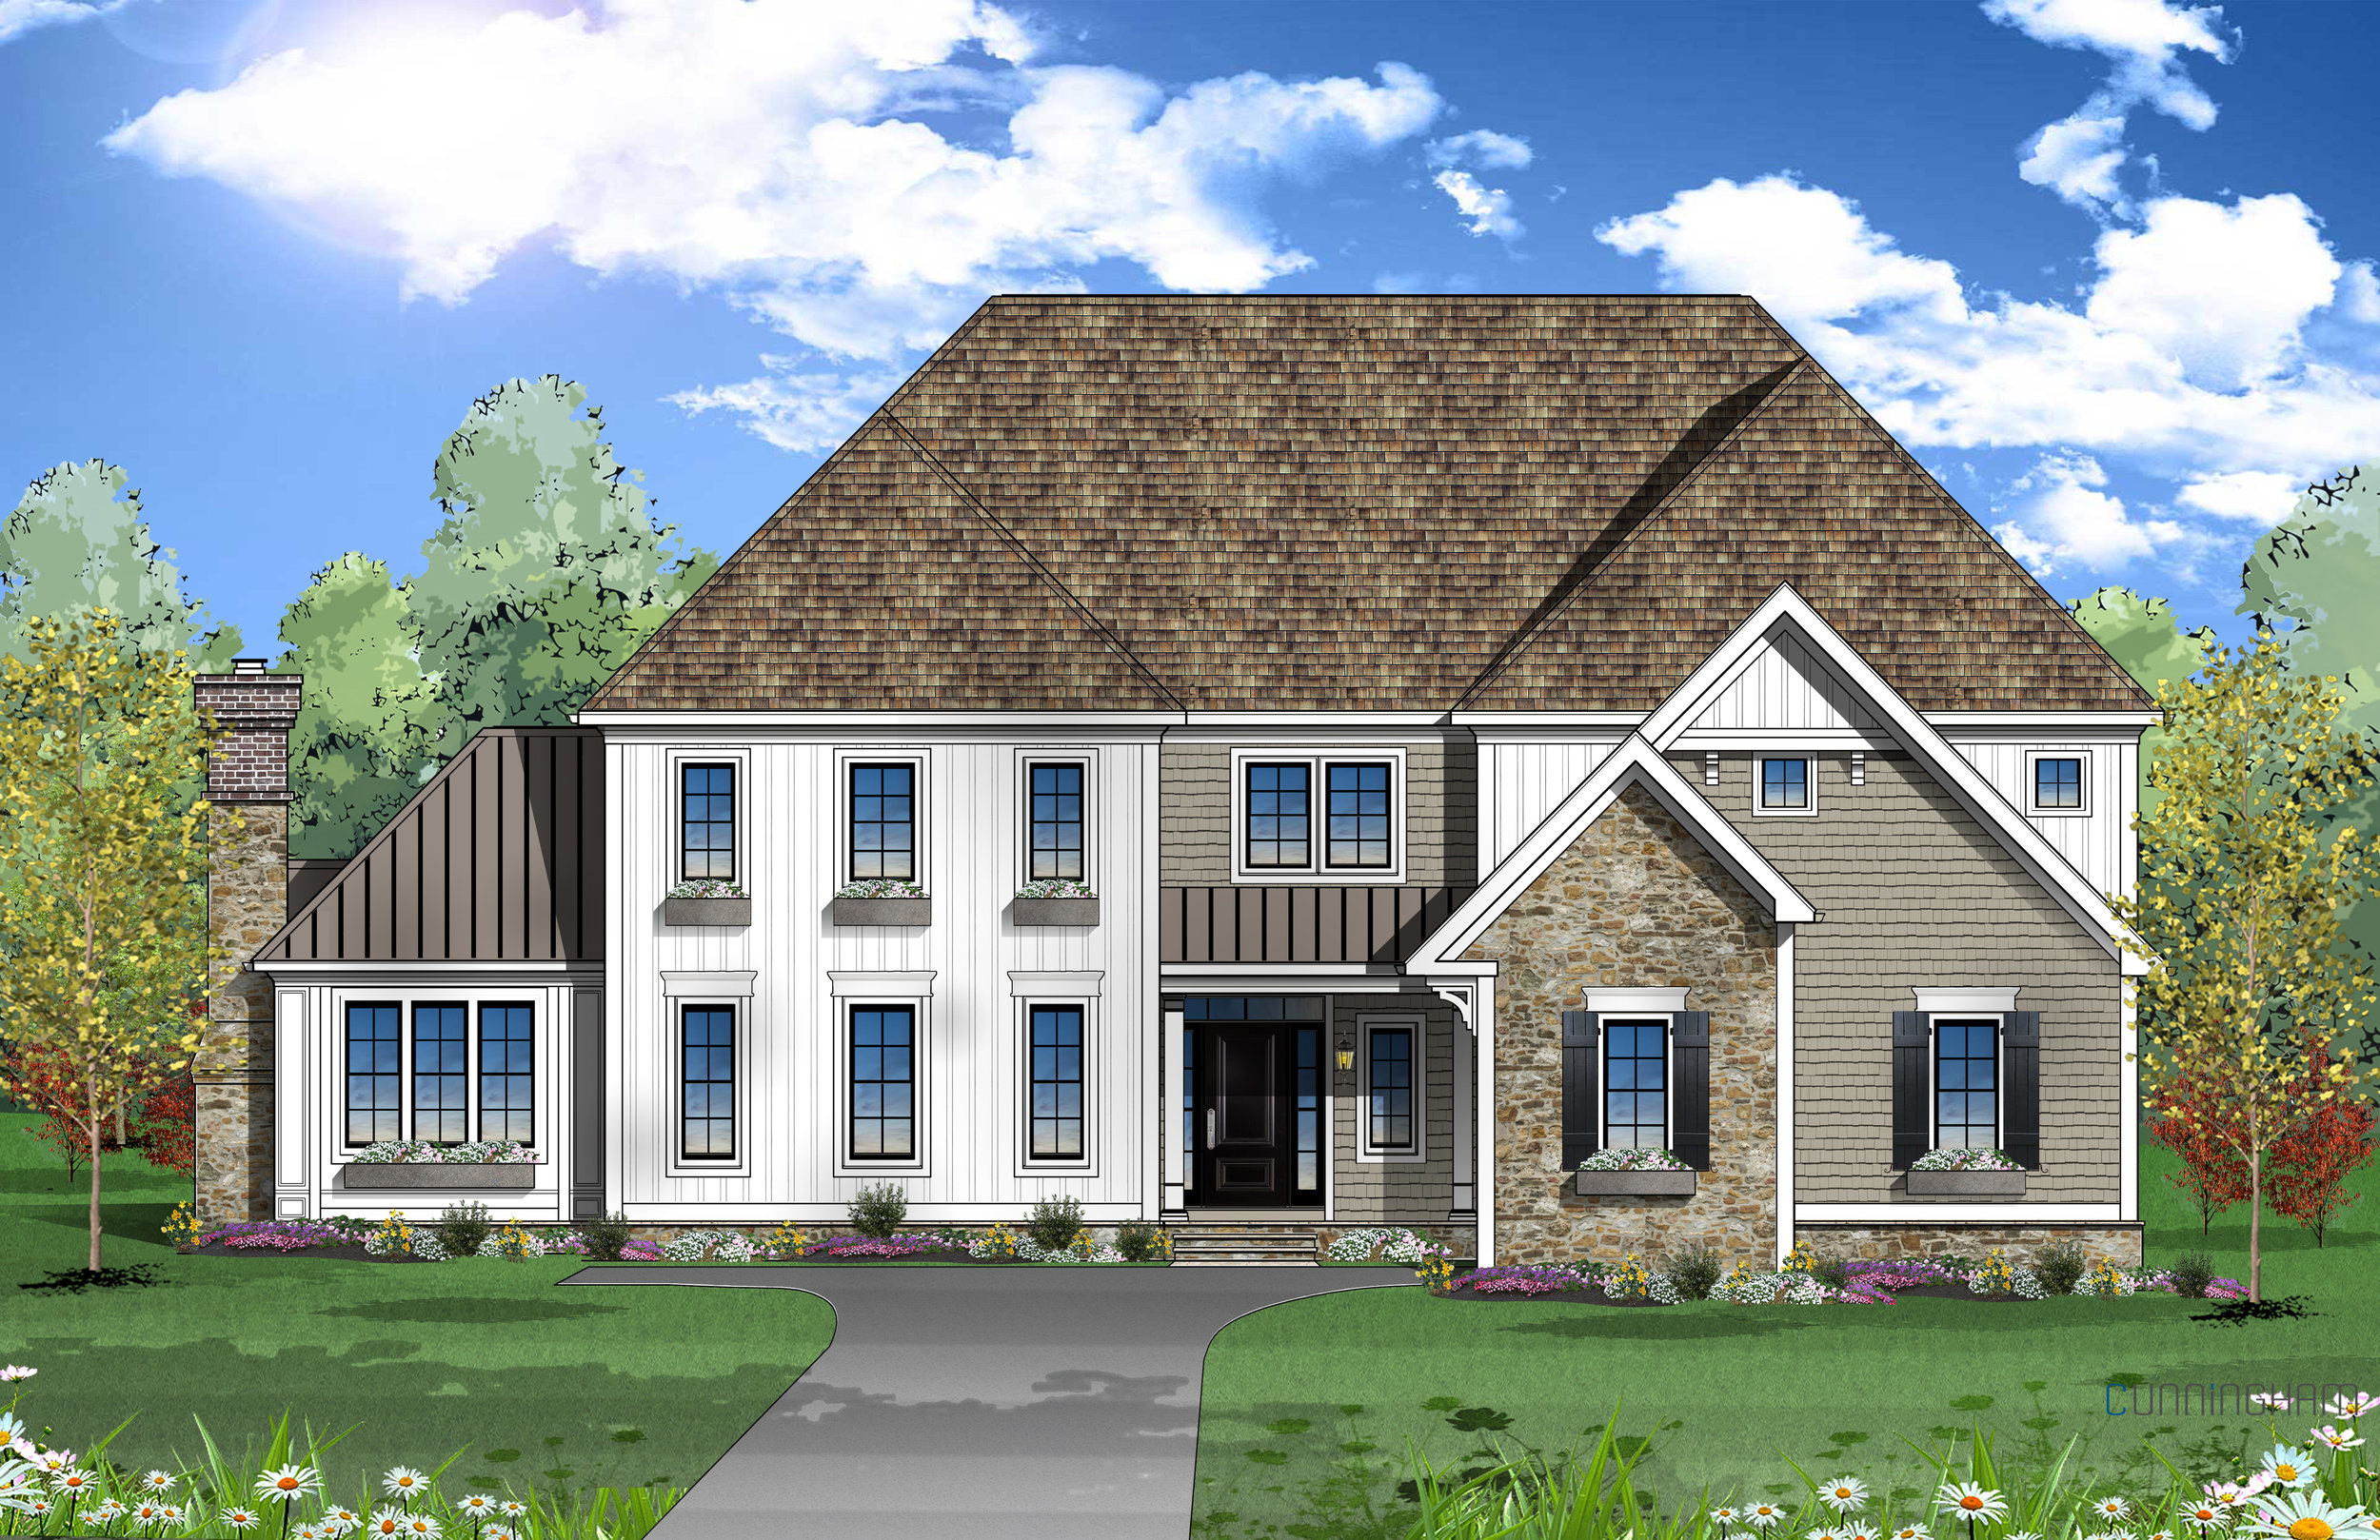 New Custom Home | Chestnut Hill, PA